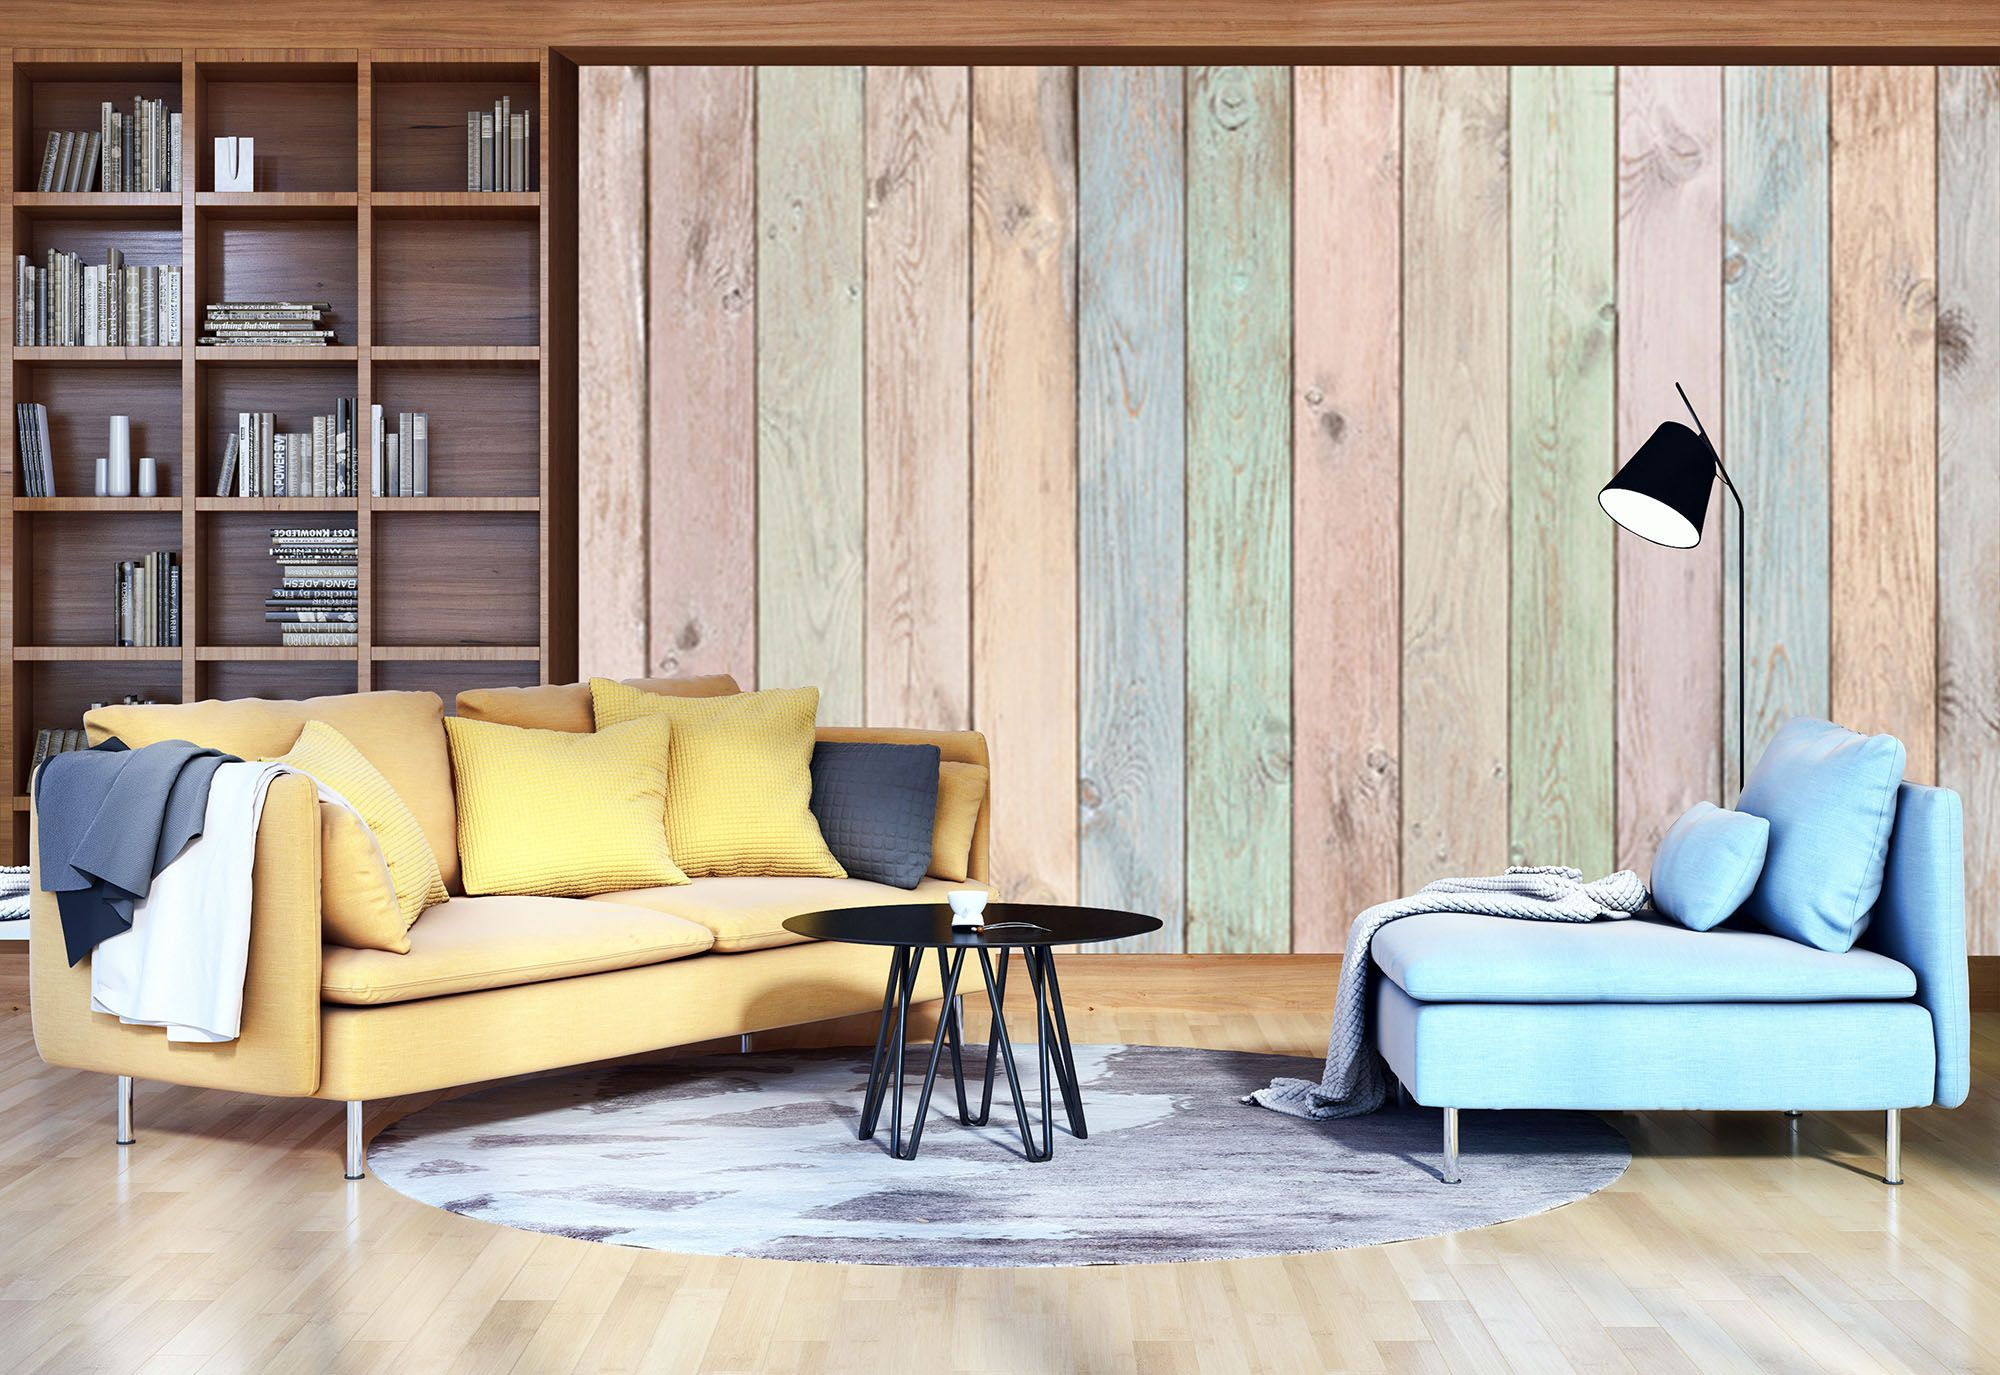 Wood Effect Wallpaper Rustic Wall Shabby Chic Wallpaper Home Interior In 2020 Shabby Chic Wallpaper Chic Wallpaper Wood Effect Wallpaper